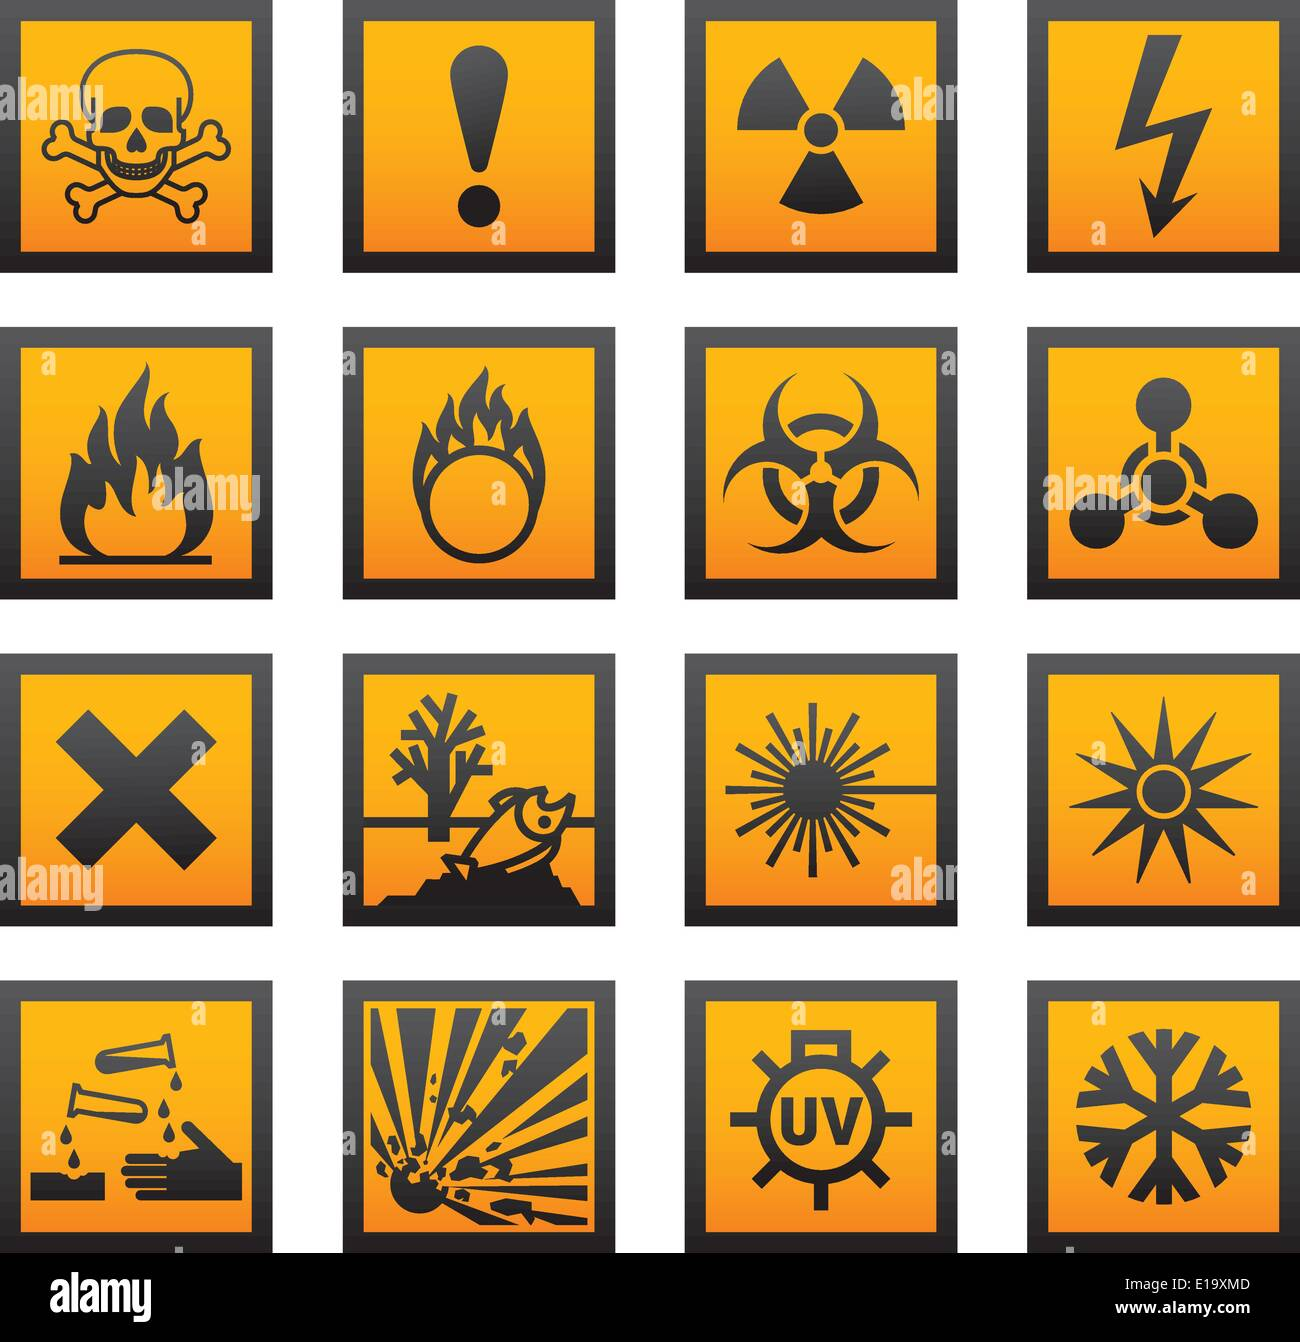 European hazard symbols Stock Vector Art & Illustration, Vector ...